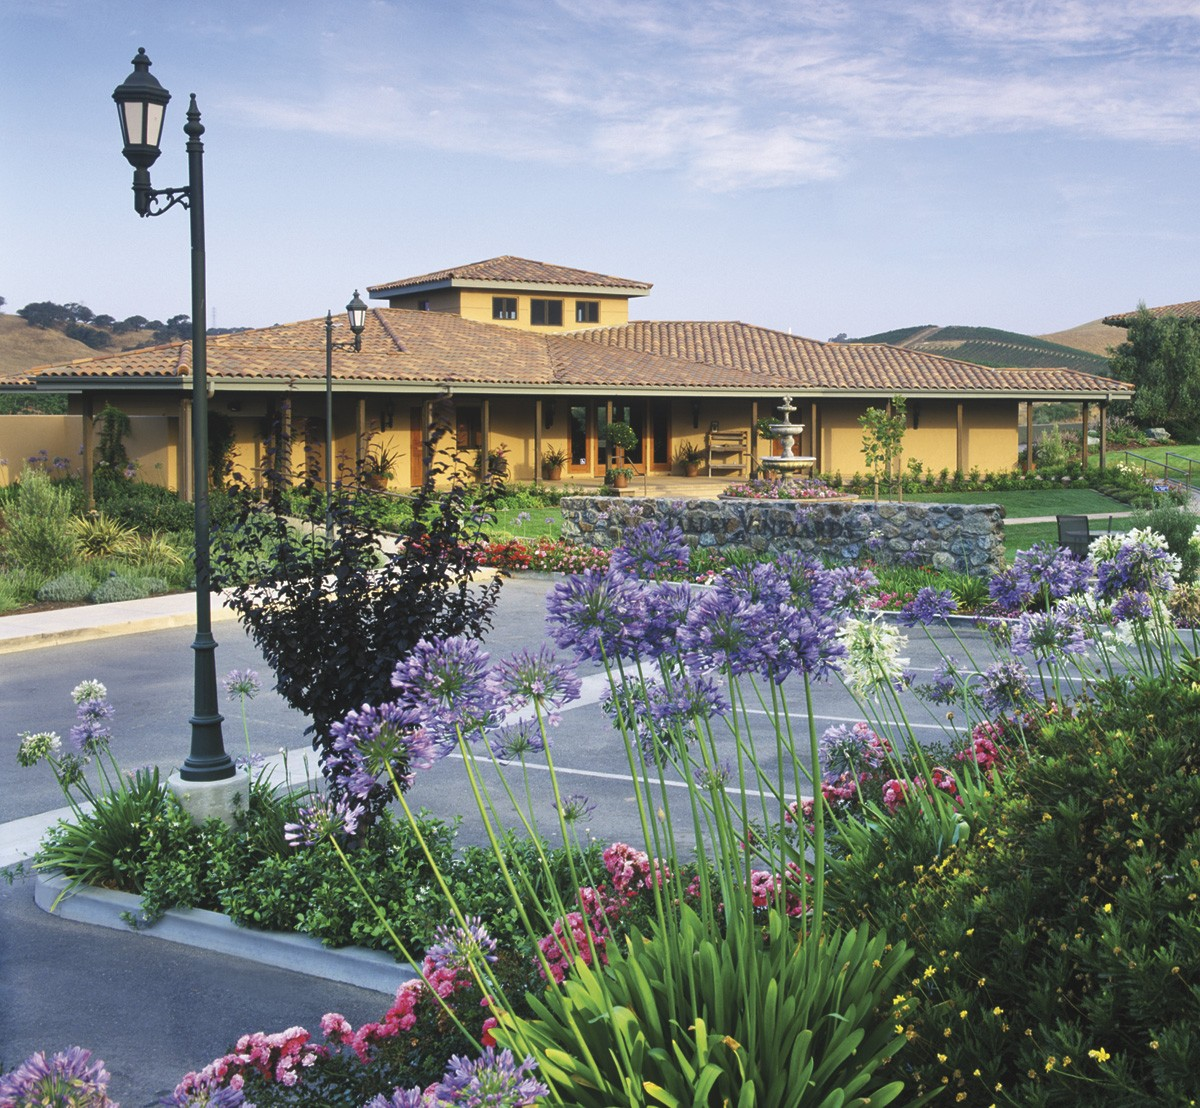 The tasting room at Talley Vineyards, built in 2002 in Arroyo Grande, California, in the heart of the San Luis Obispo Coast.